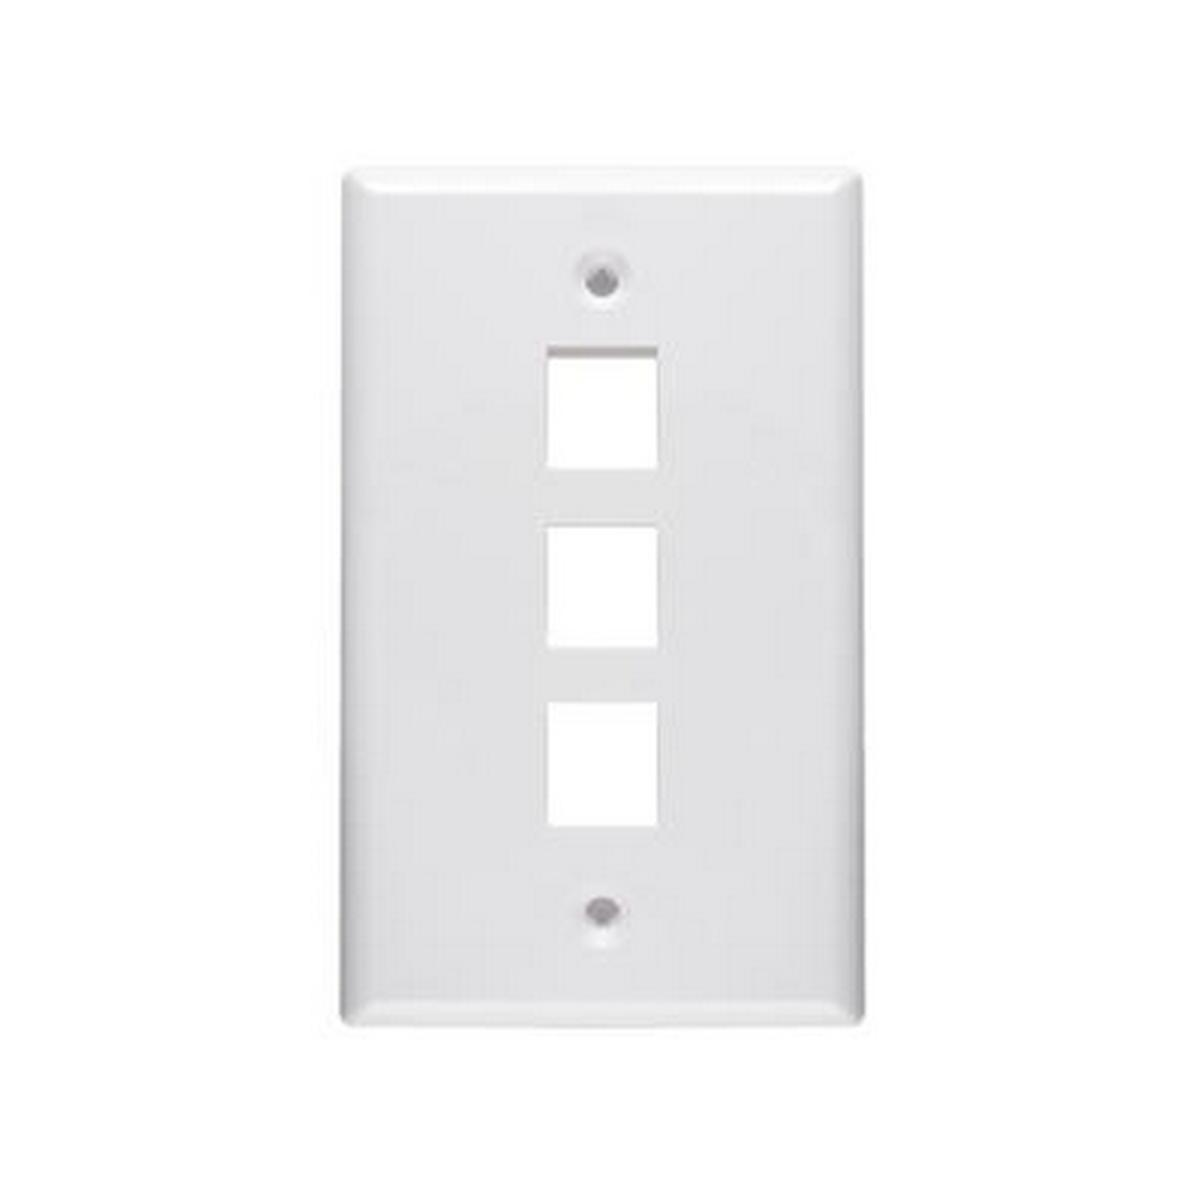 3 Port keystone 1 gang Wall plate White